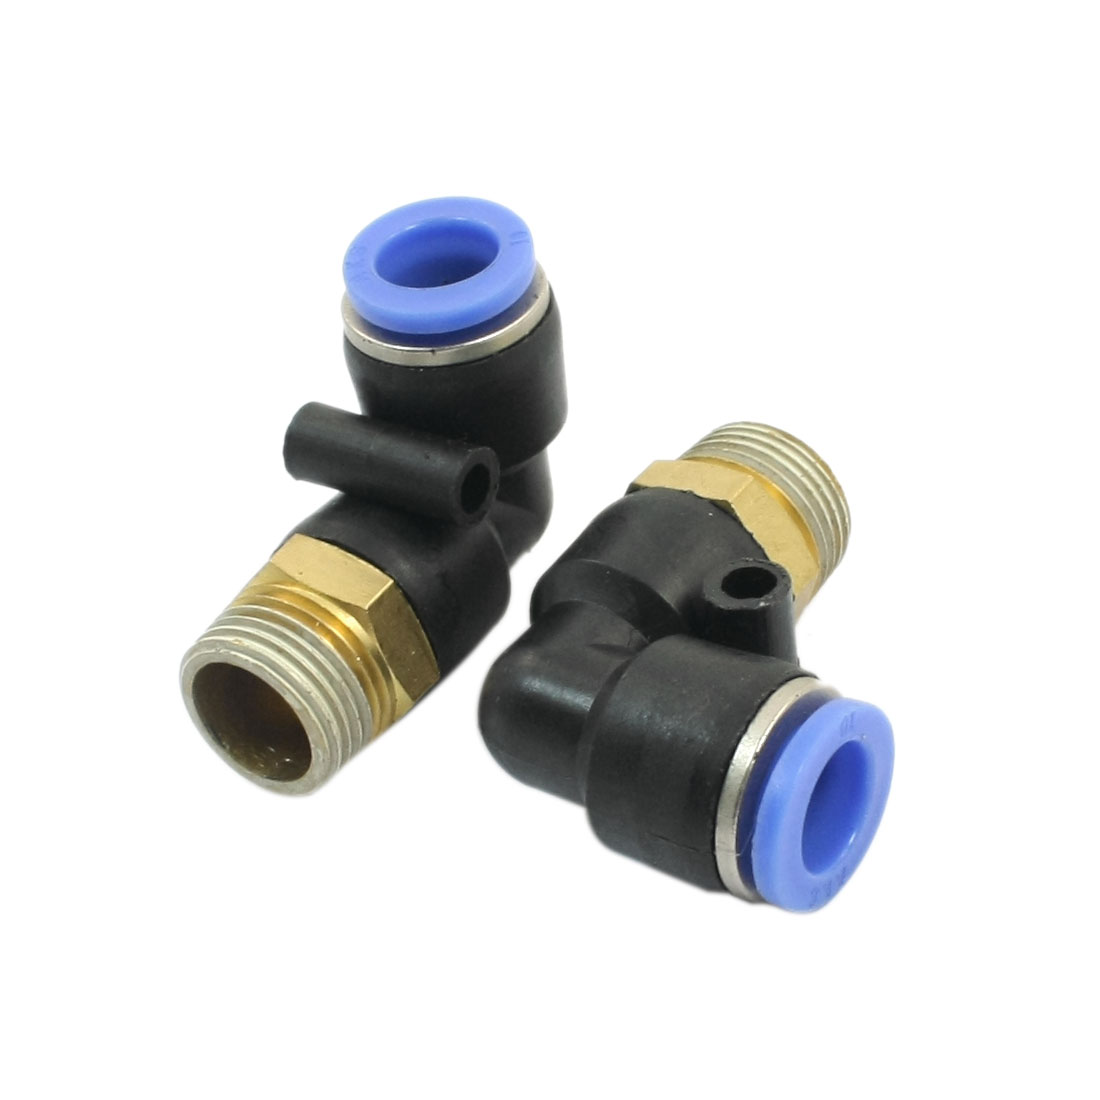 2pcs 3/8PT Male Thread 12mm to 10mm Two Way L-Shaped Elbow Connector Pneumatic Quick Fitting Coupler